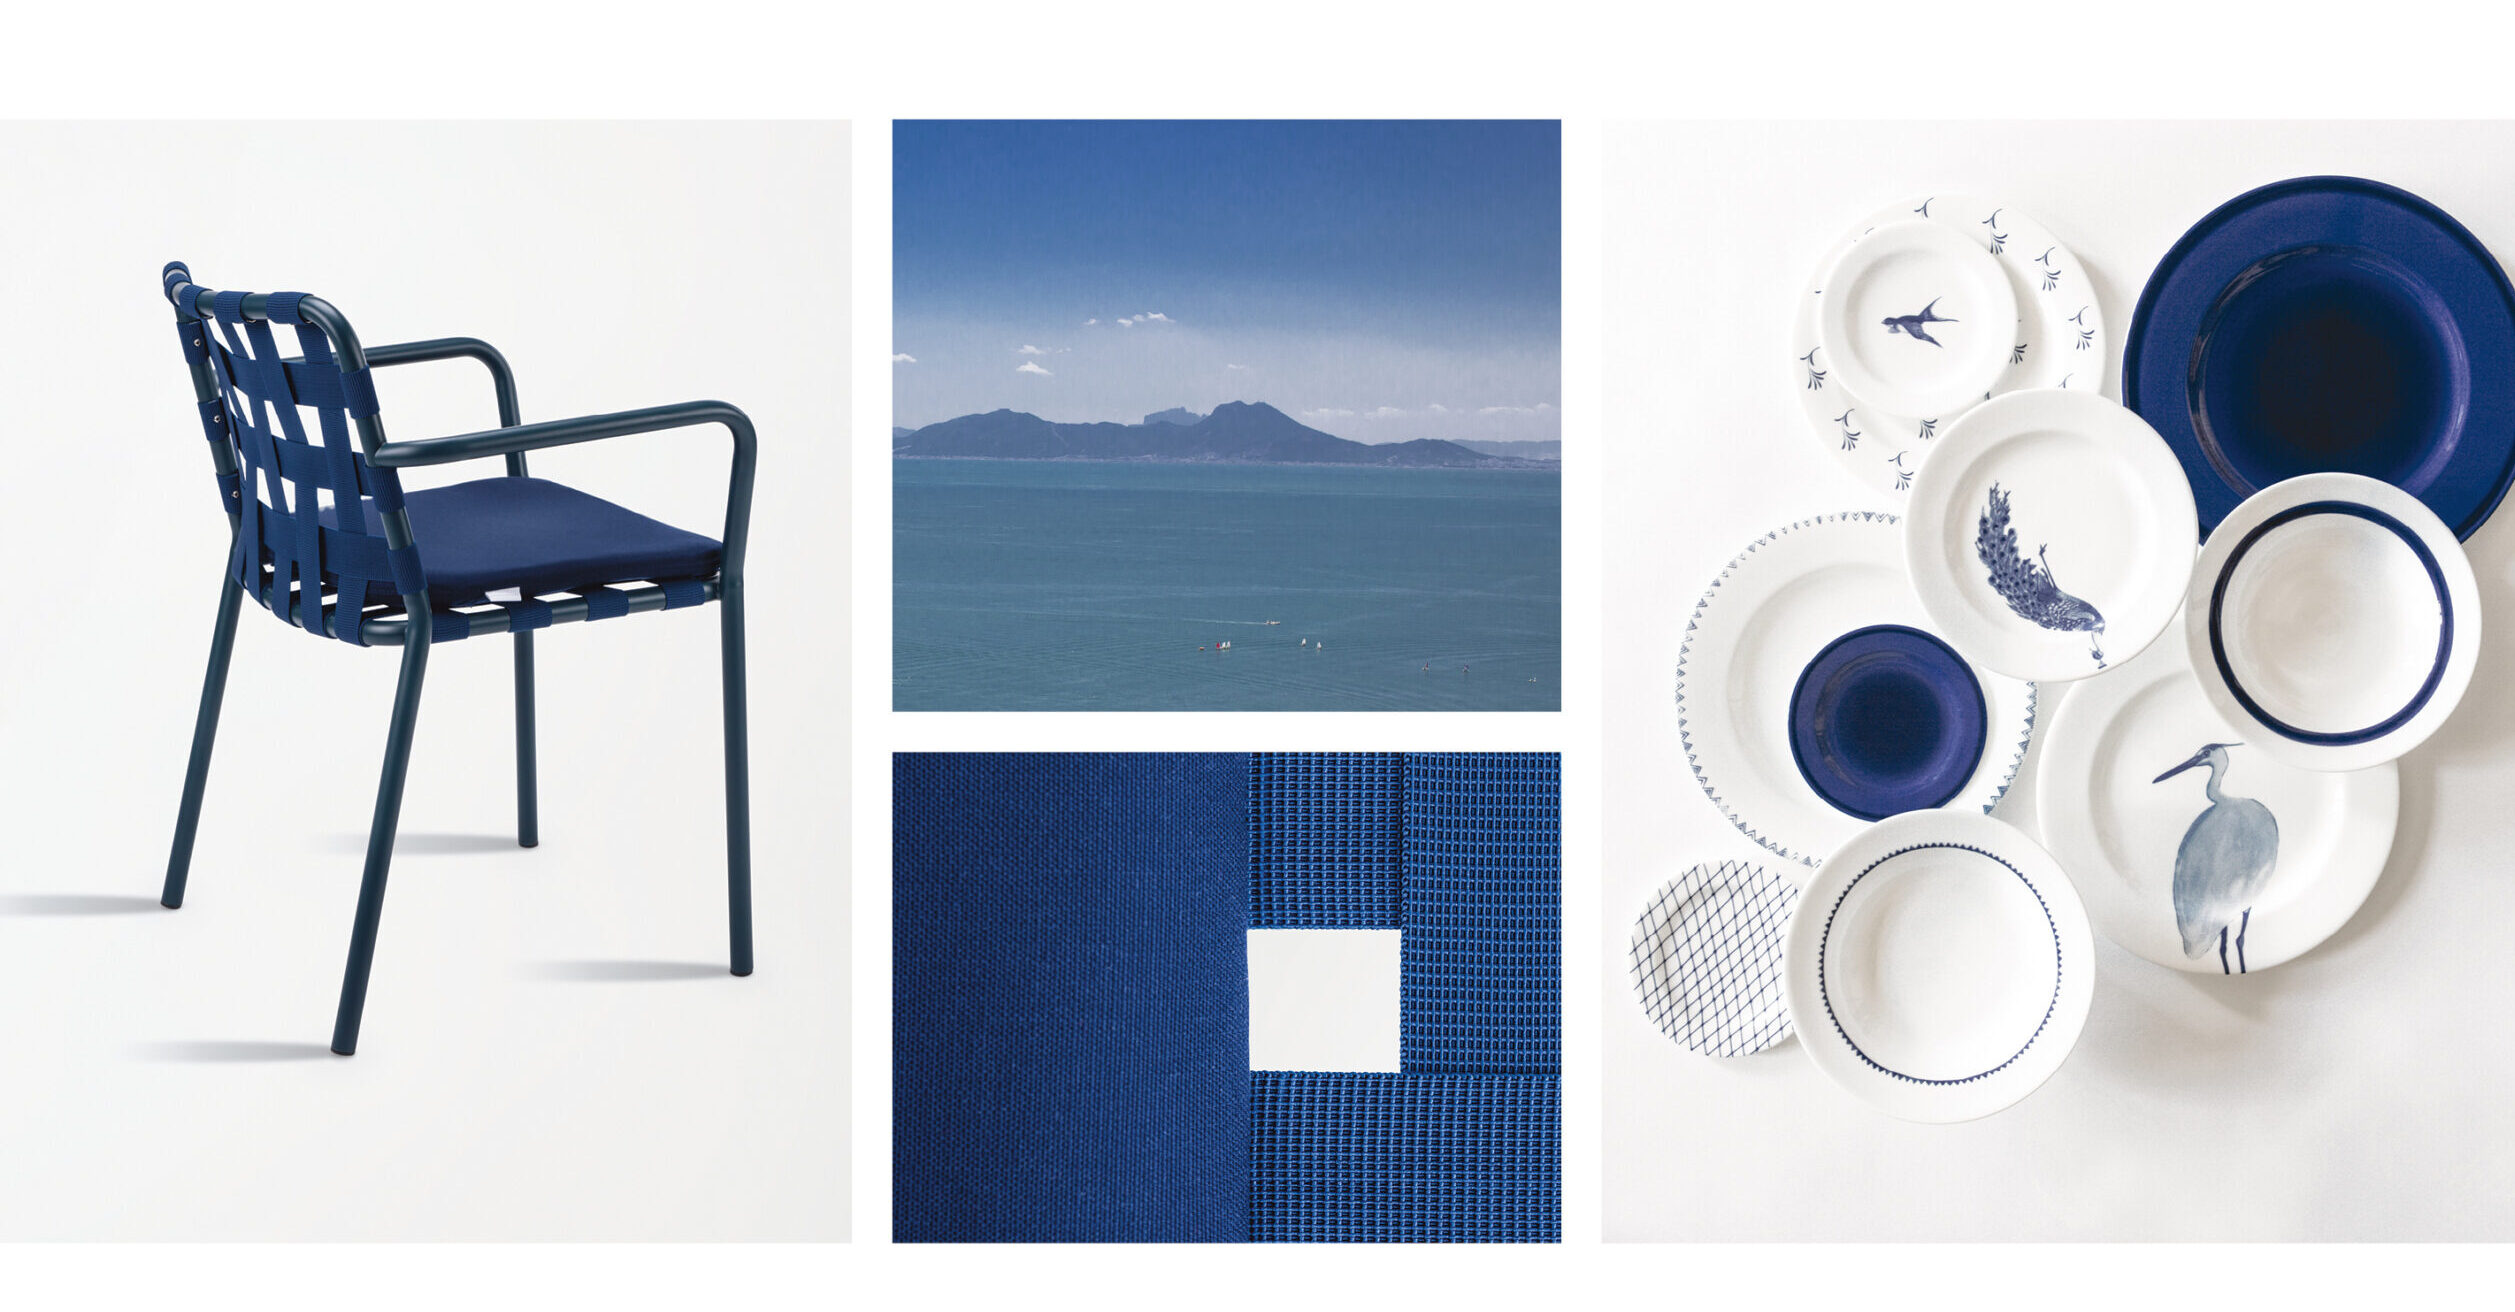 https://www.schoenhuberfranchi.it/wp-content/uploads/2020/12/KN-OUTDOOR-CC-05-capsule-collection-blue-scaled-e1607107009100.jpg